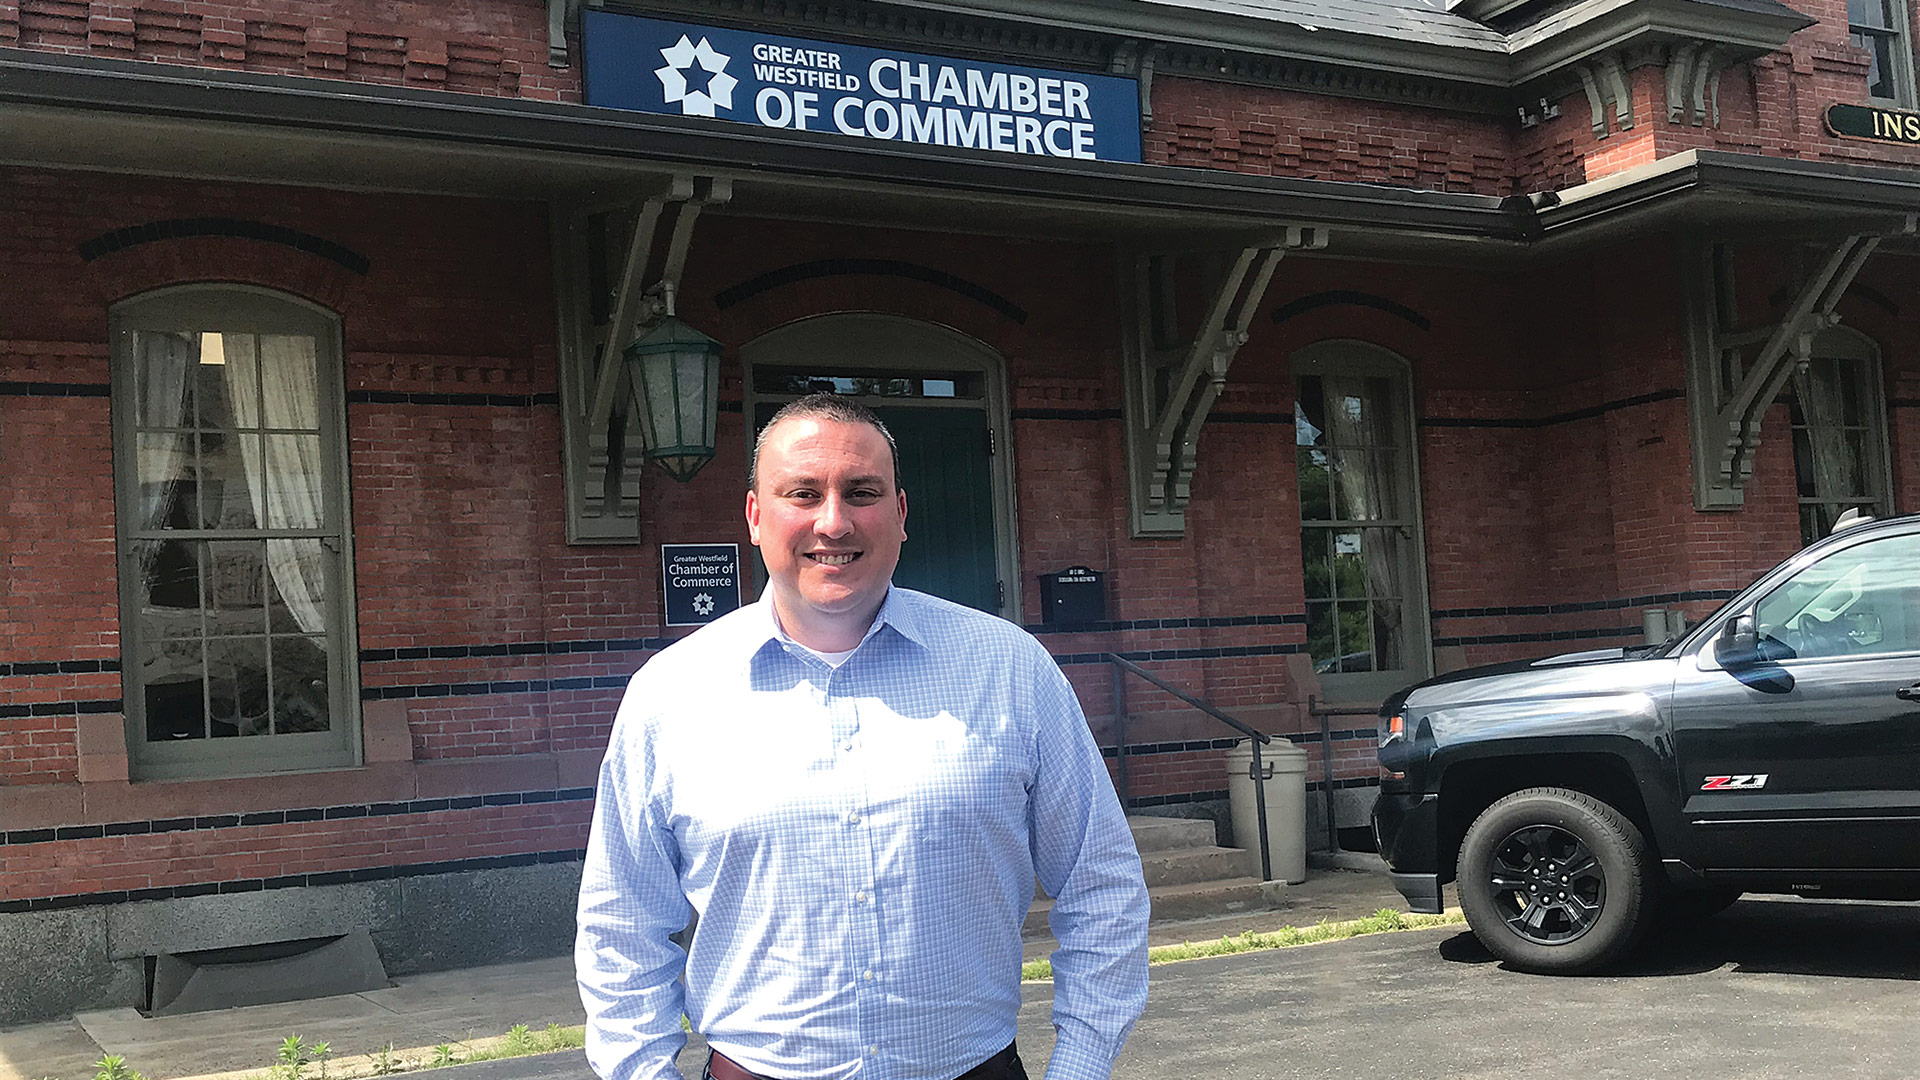 While new to chamber leadership, Eric Oulette